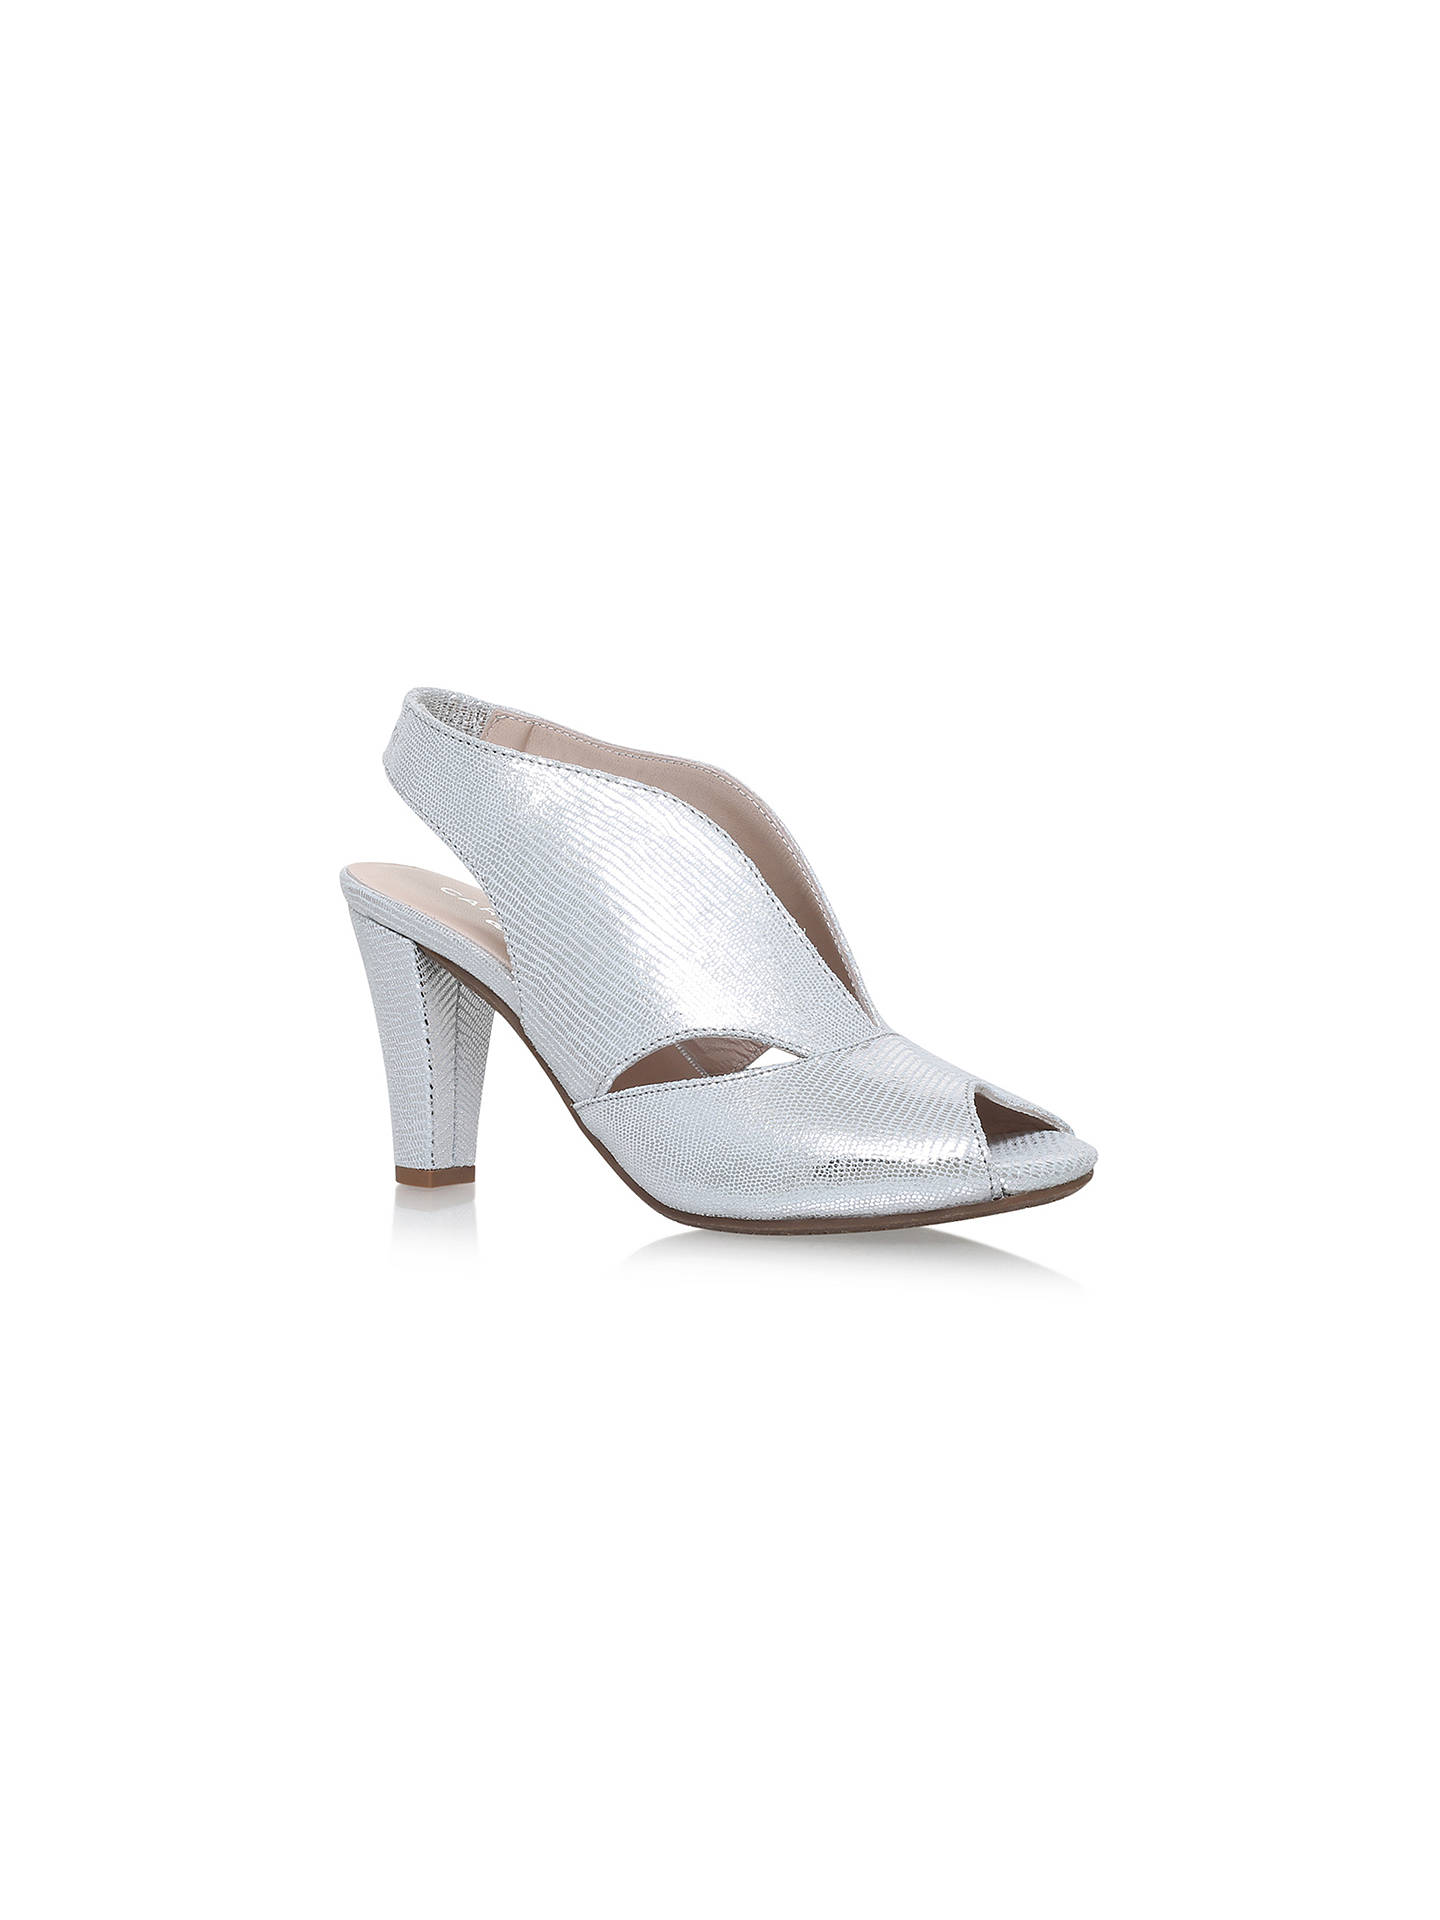 65c09636a5ca1 Buy Carvela Comfort Arabella Cone Heel Open Toe Court Shoes, Silver  Leather, 3 Online ...